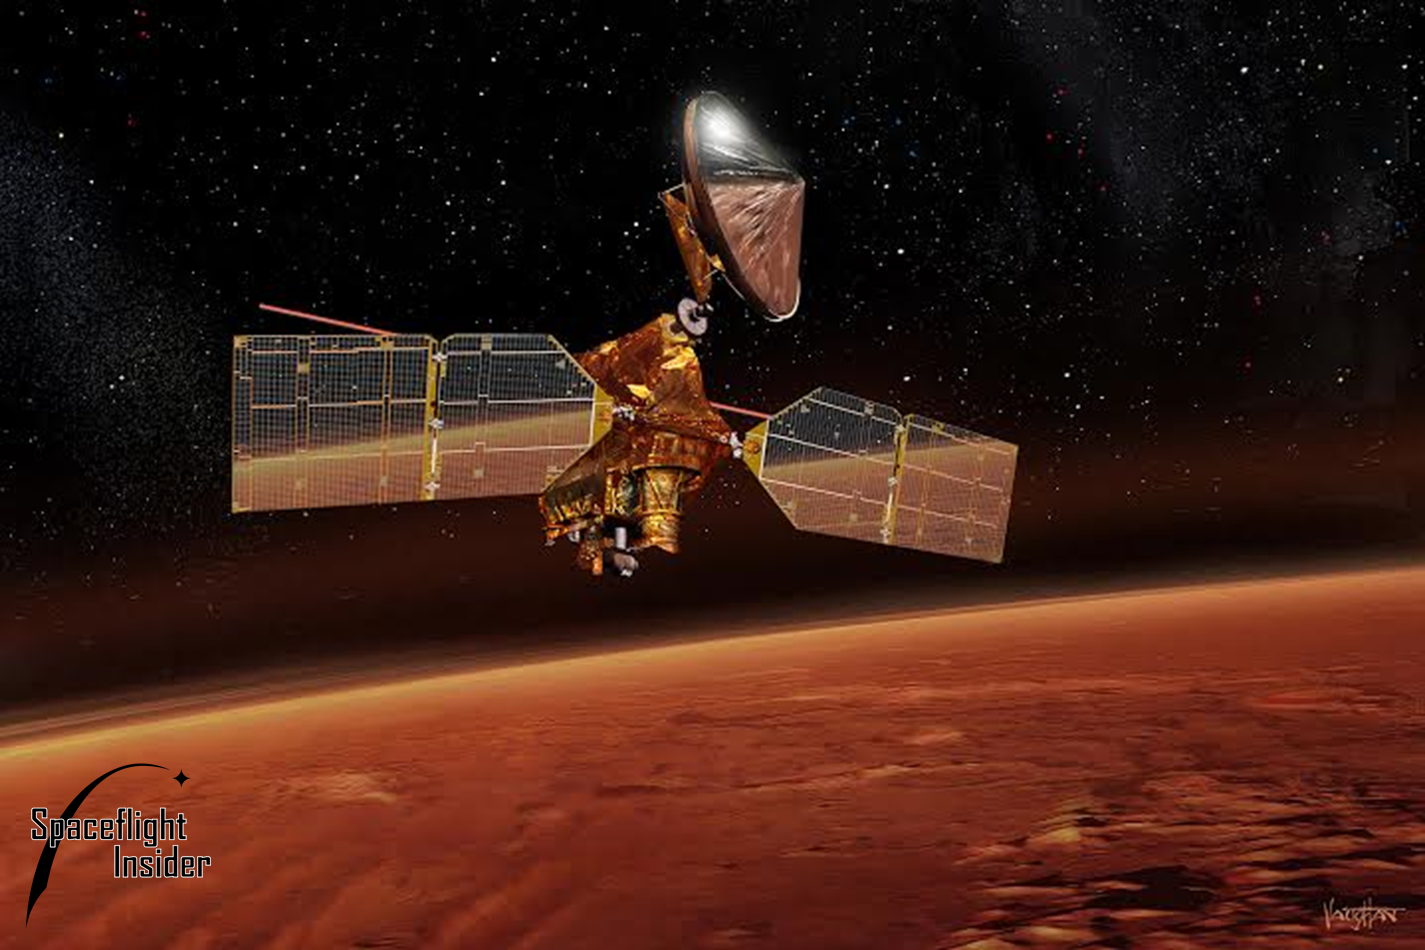 Artist's depiction of NASA's Mars Reconnaissance Orbiter above the Red Planet. Image Credit: James Vaughan / SpaceFlight Insider